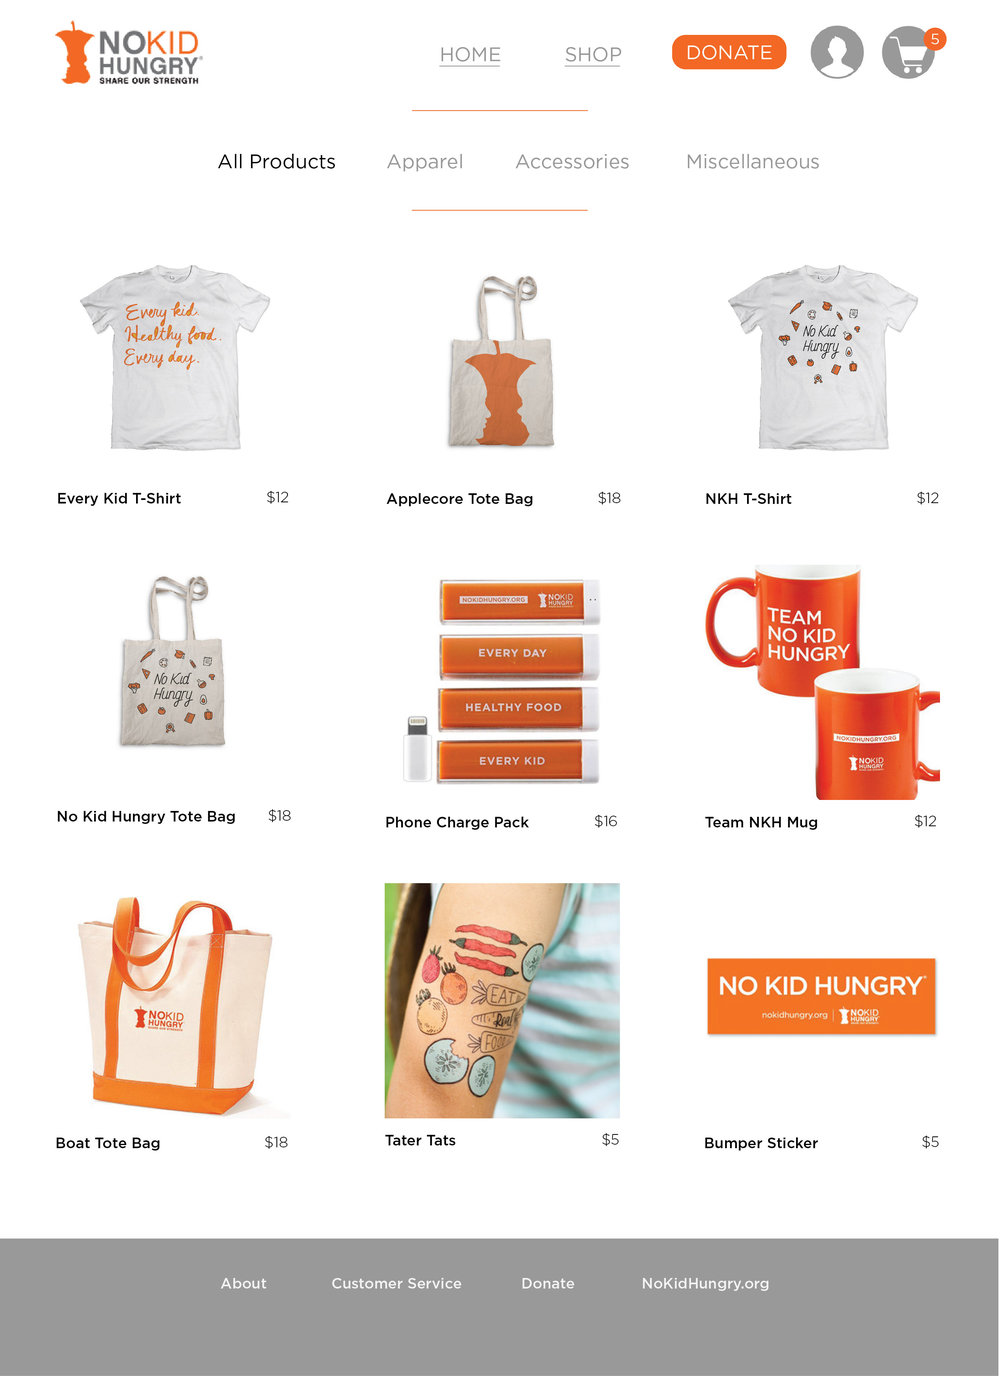 Categorized Merchandize